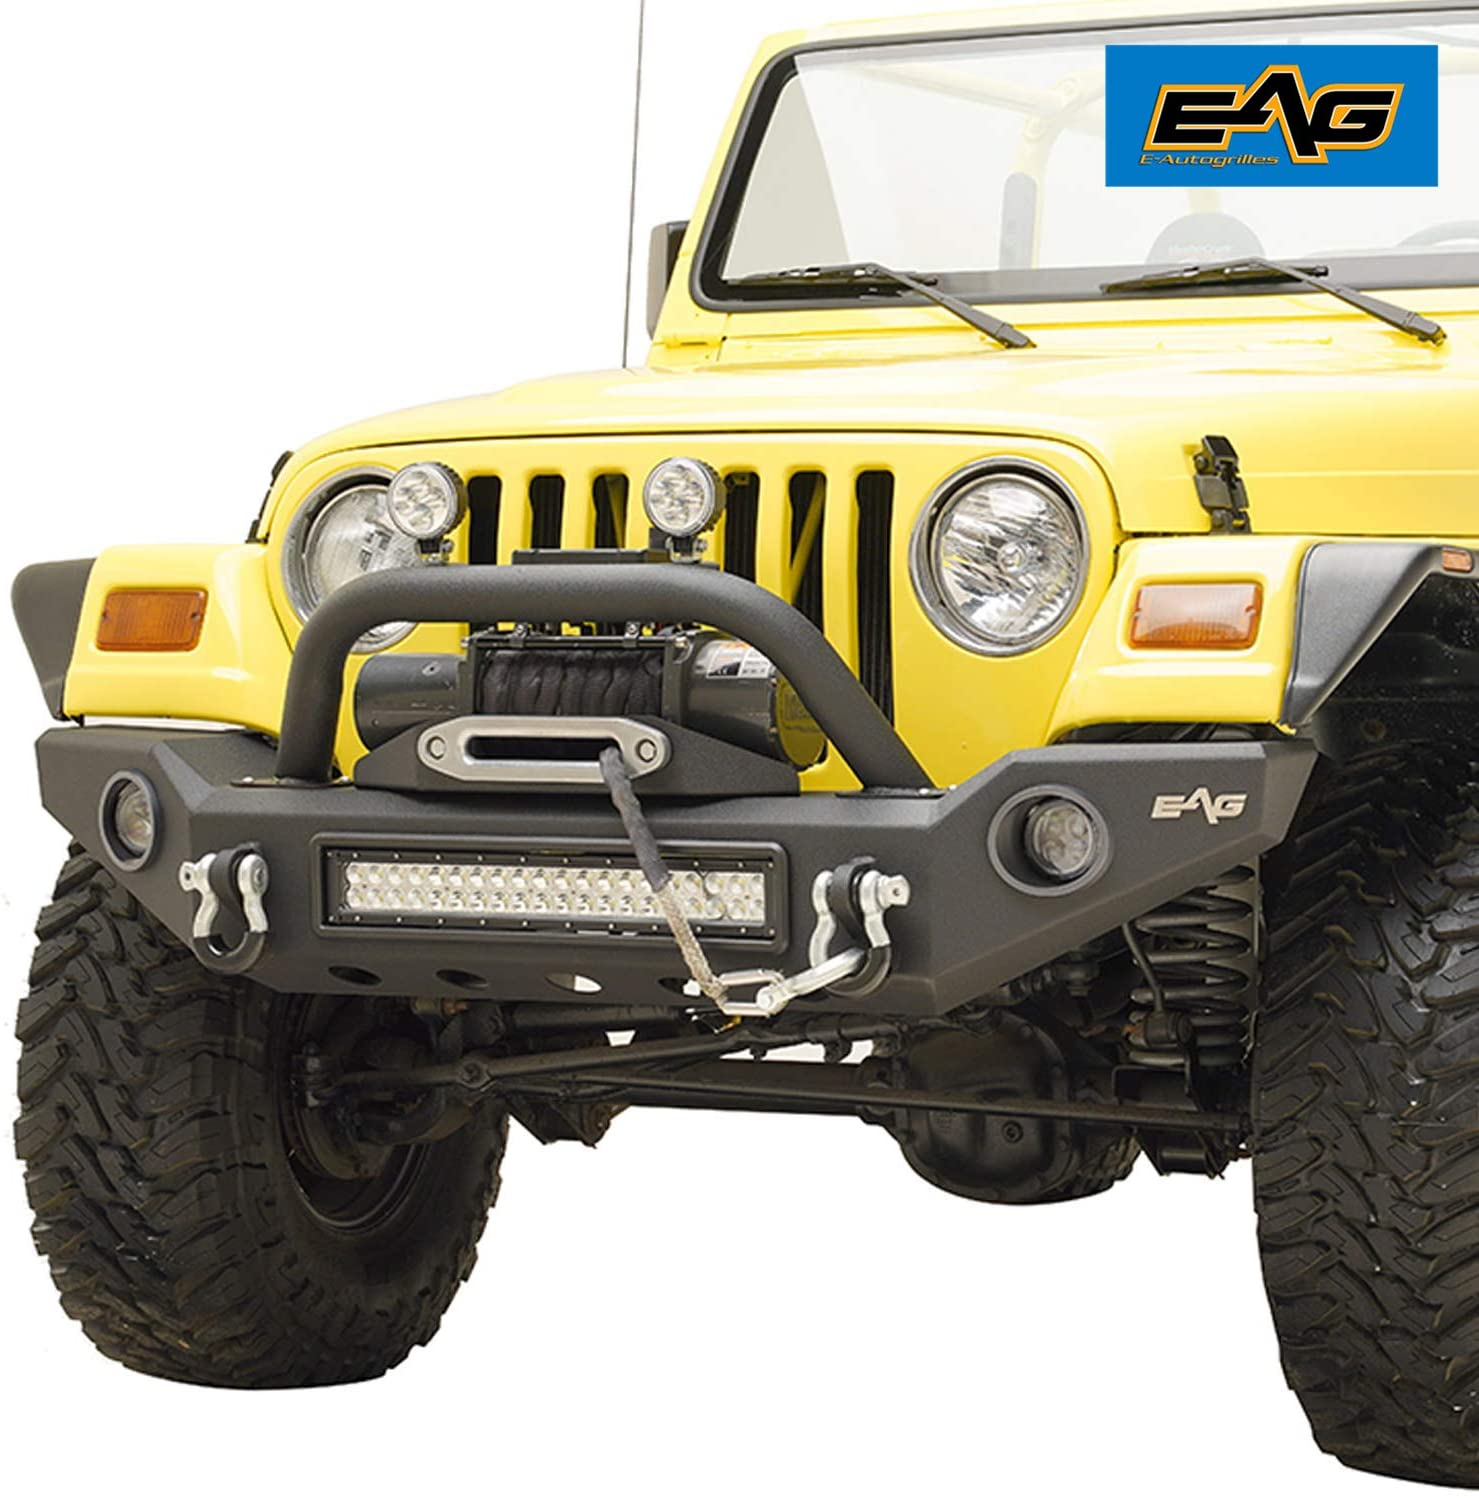 EAG LED Front Bumper with Light Surrounds Fits for 87-06 Wrangler TJ YJ